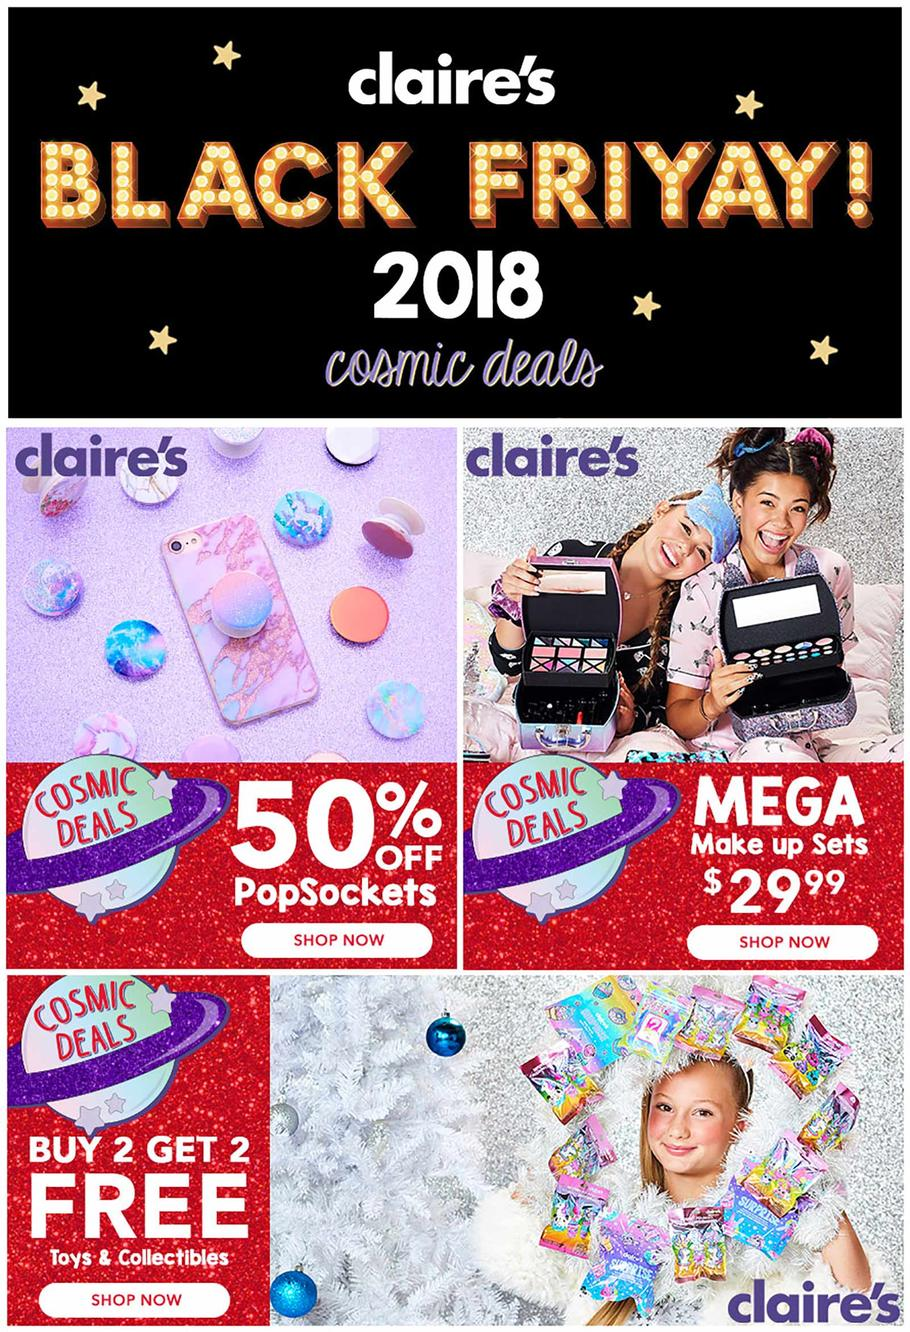 Claires Black Friday 2018